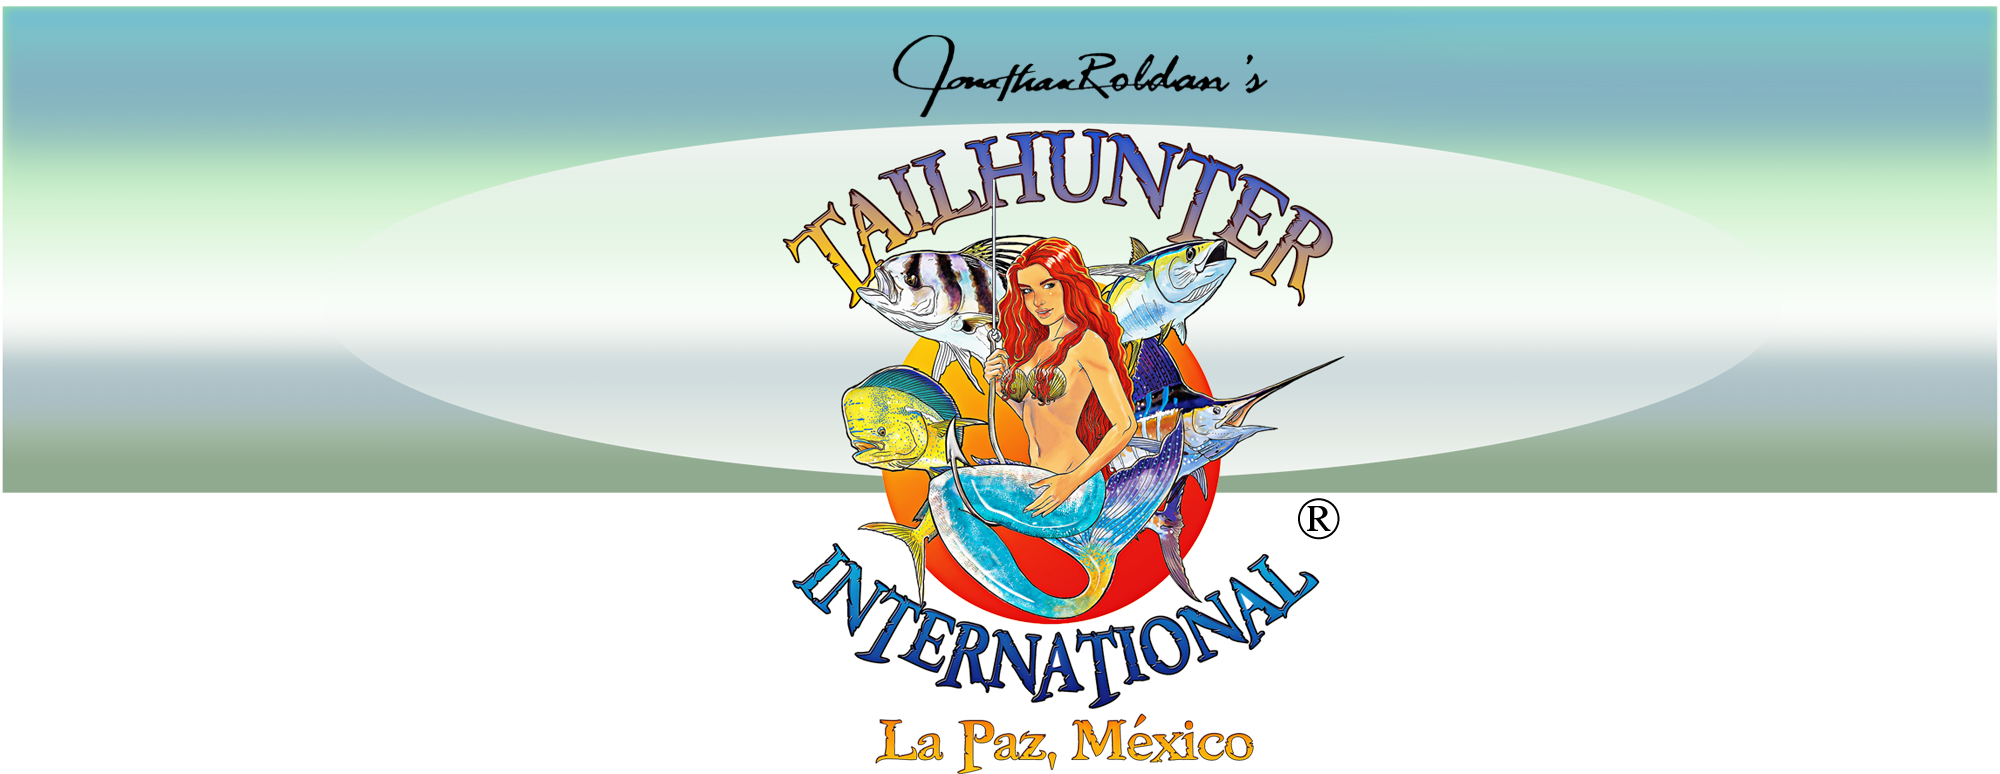 Tailhunter International in La Paz, Baja Sur - Best Rated Sea of Cortez Sportfishing Outfitter - Full Service Sport Fishing in Baja California & #8212; FISH BAJA & #8212;